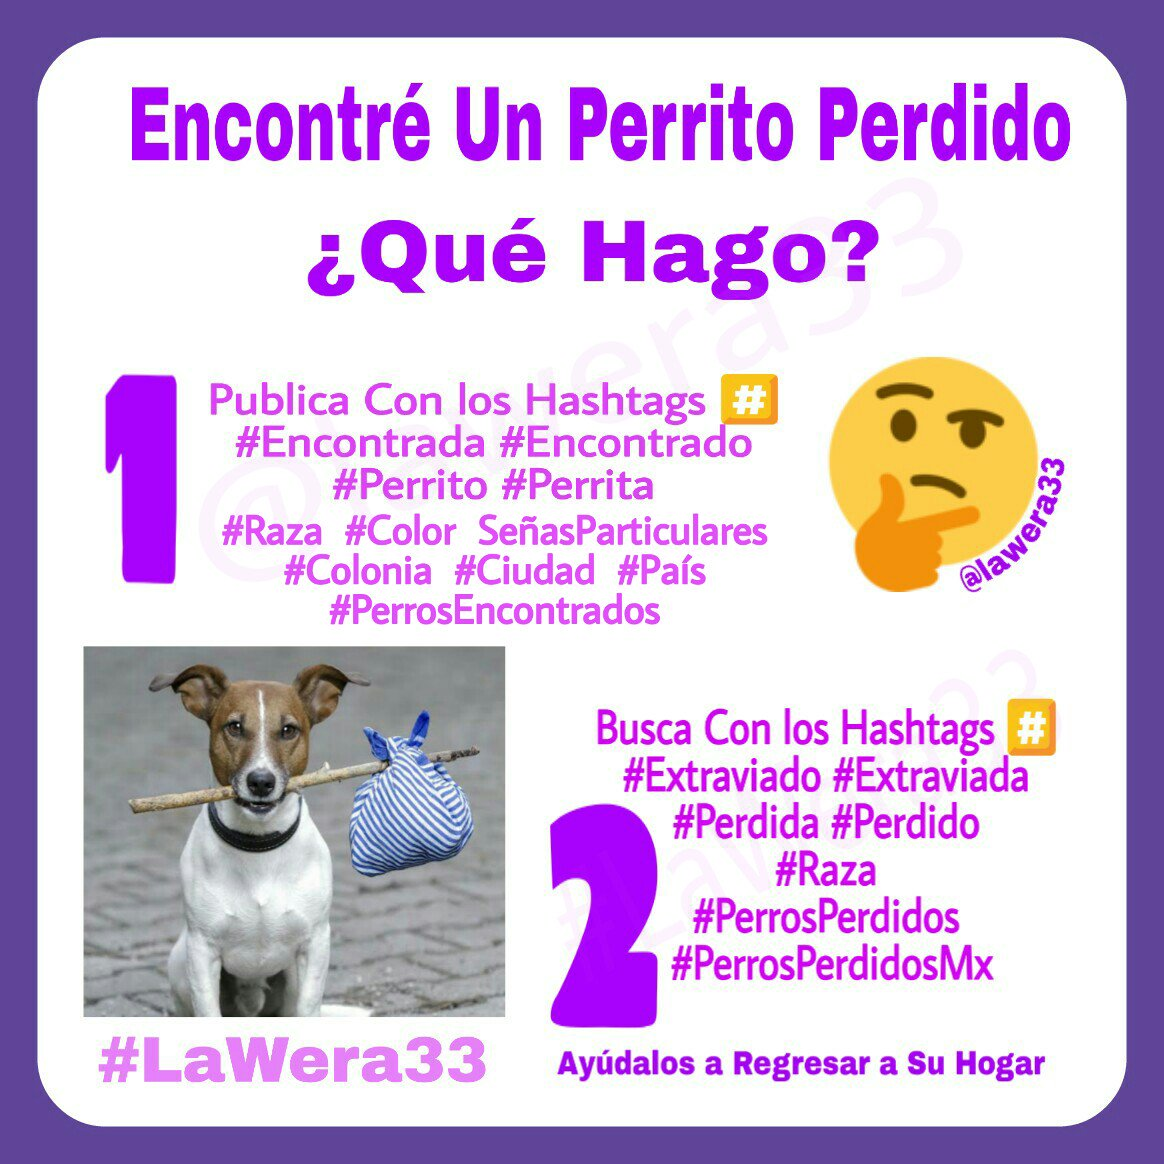 🆘🐾Perros Encontrados🐾LaWera33's photo on #estoysoloencasay